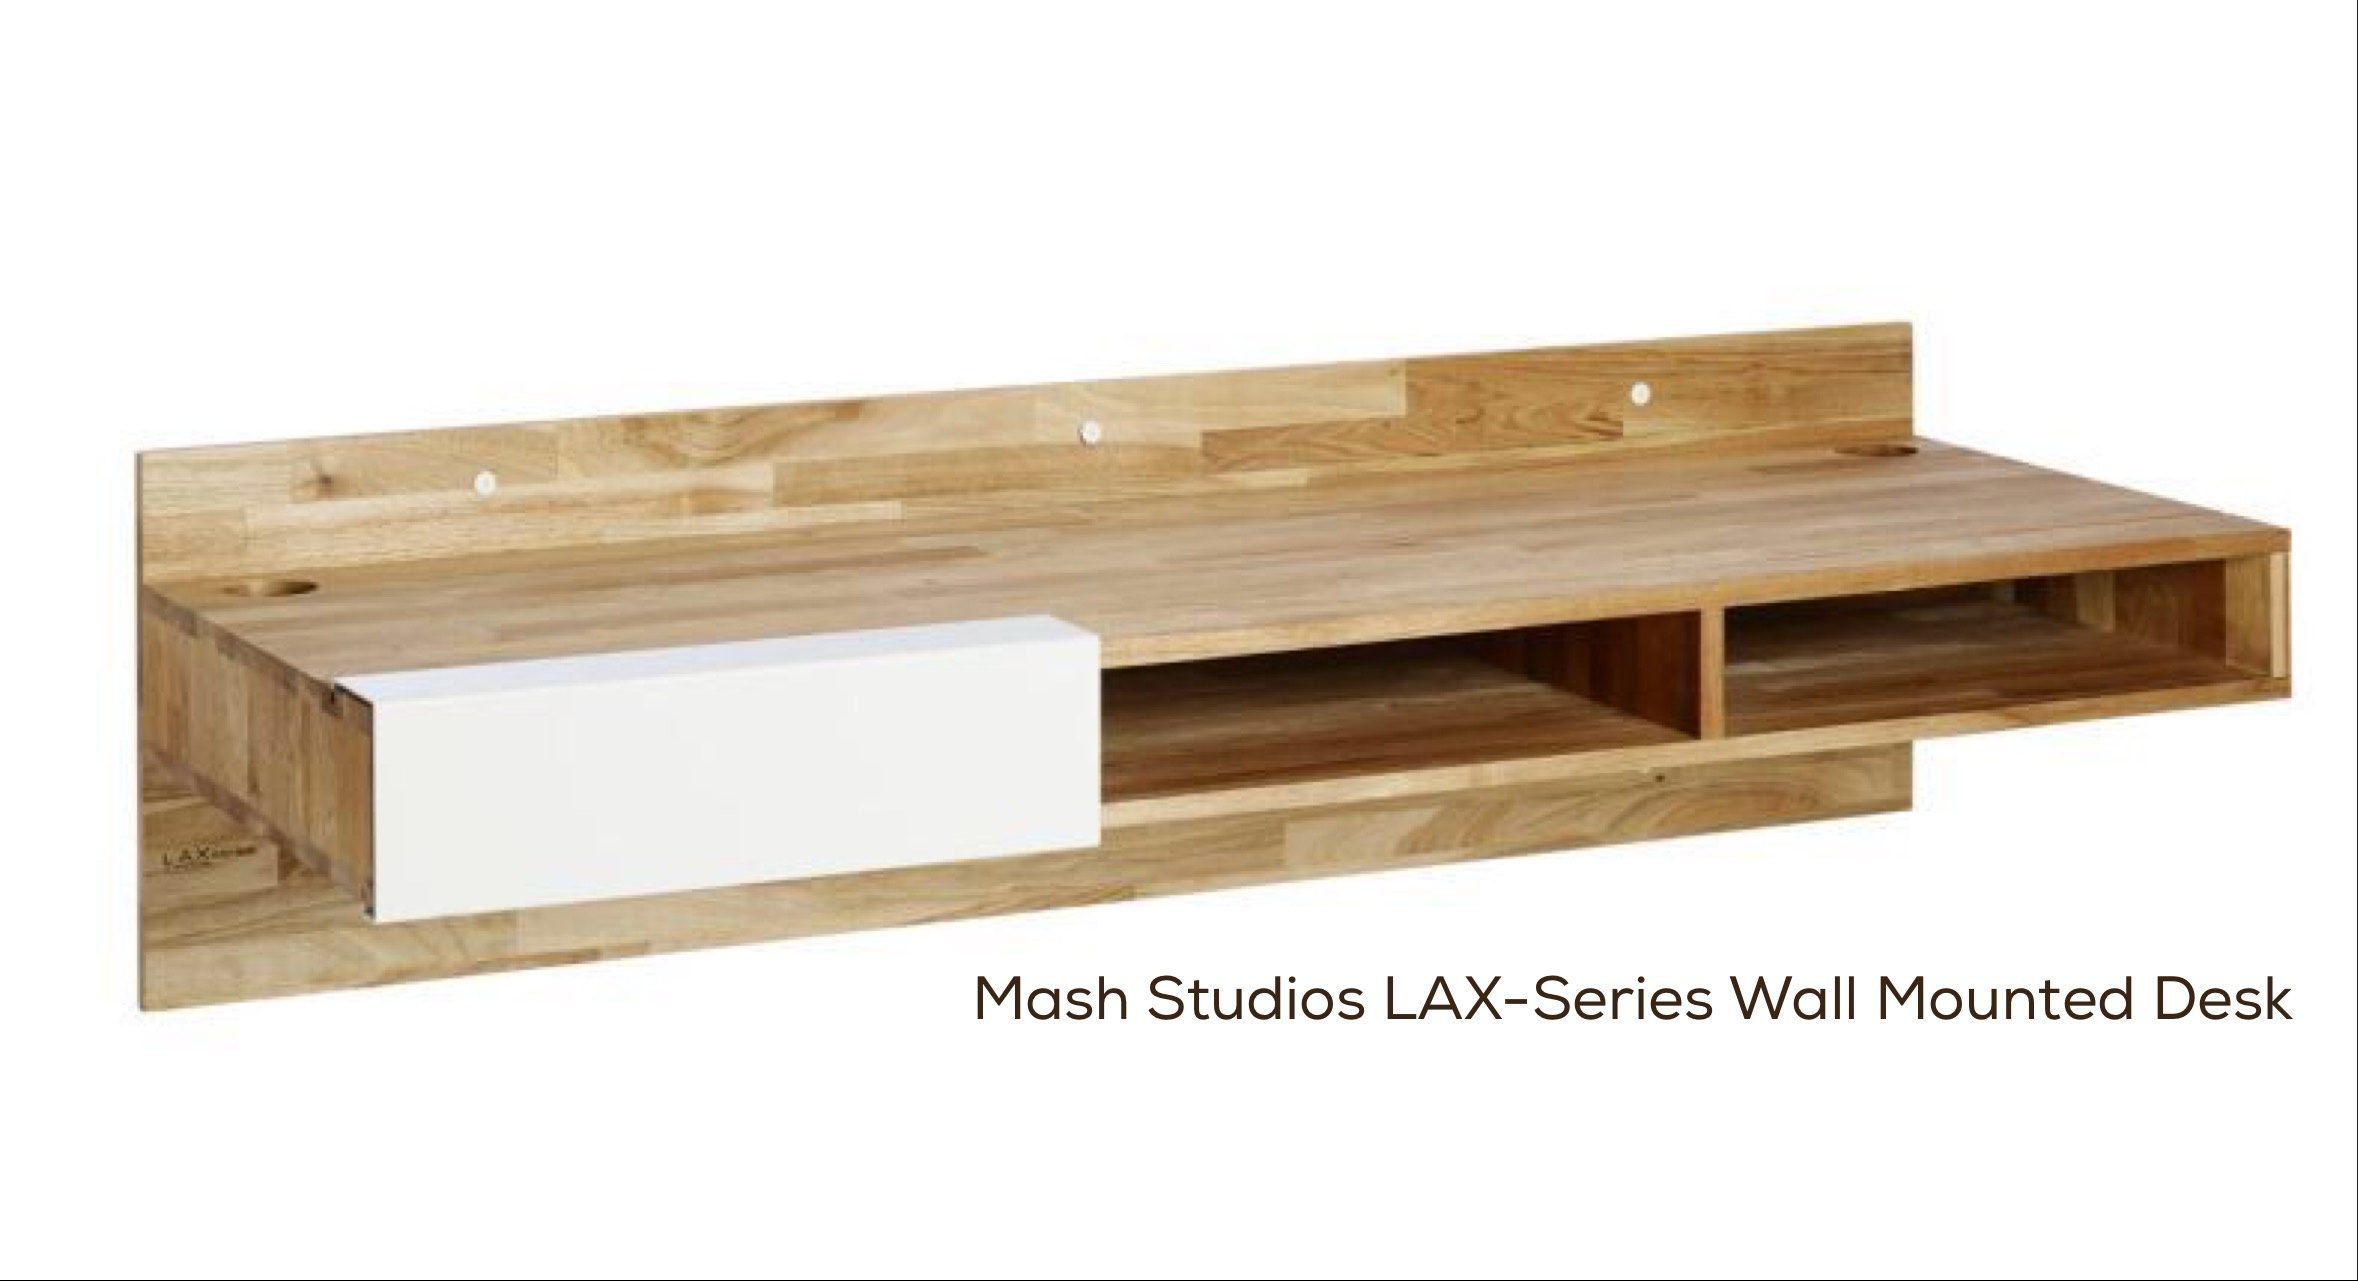 Mash Studios LAX-Series Wall Mounted Desk